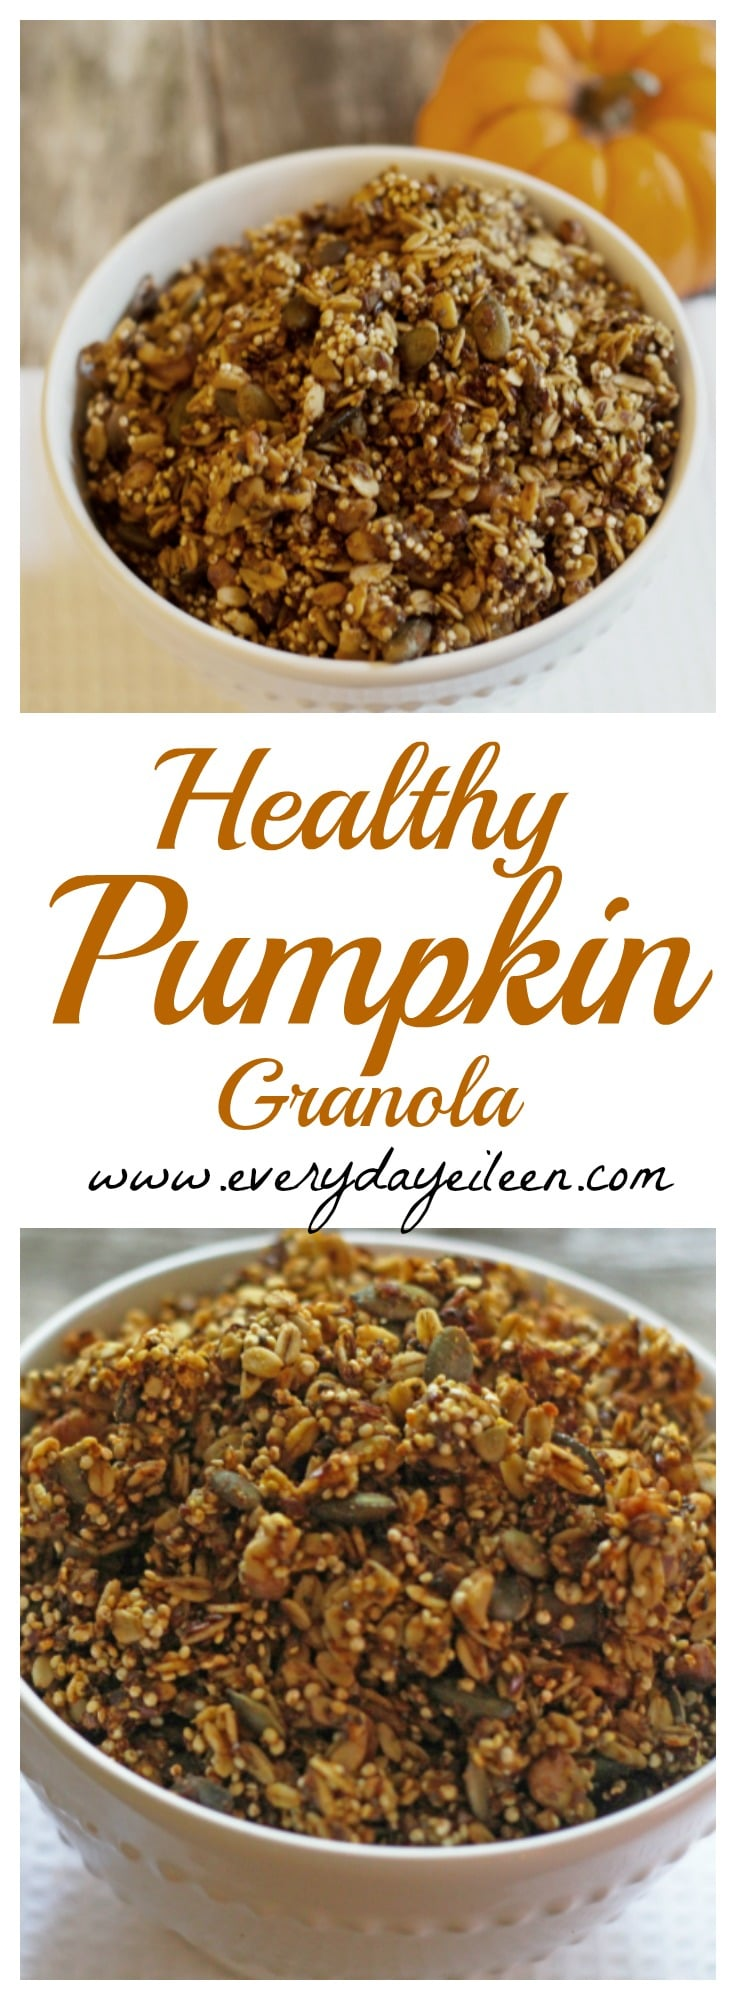 Healthy Pumpkin Granola - Everyday Eileen